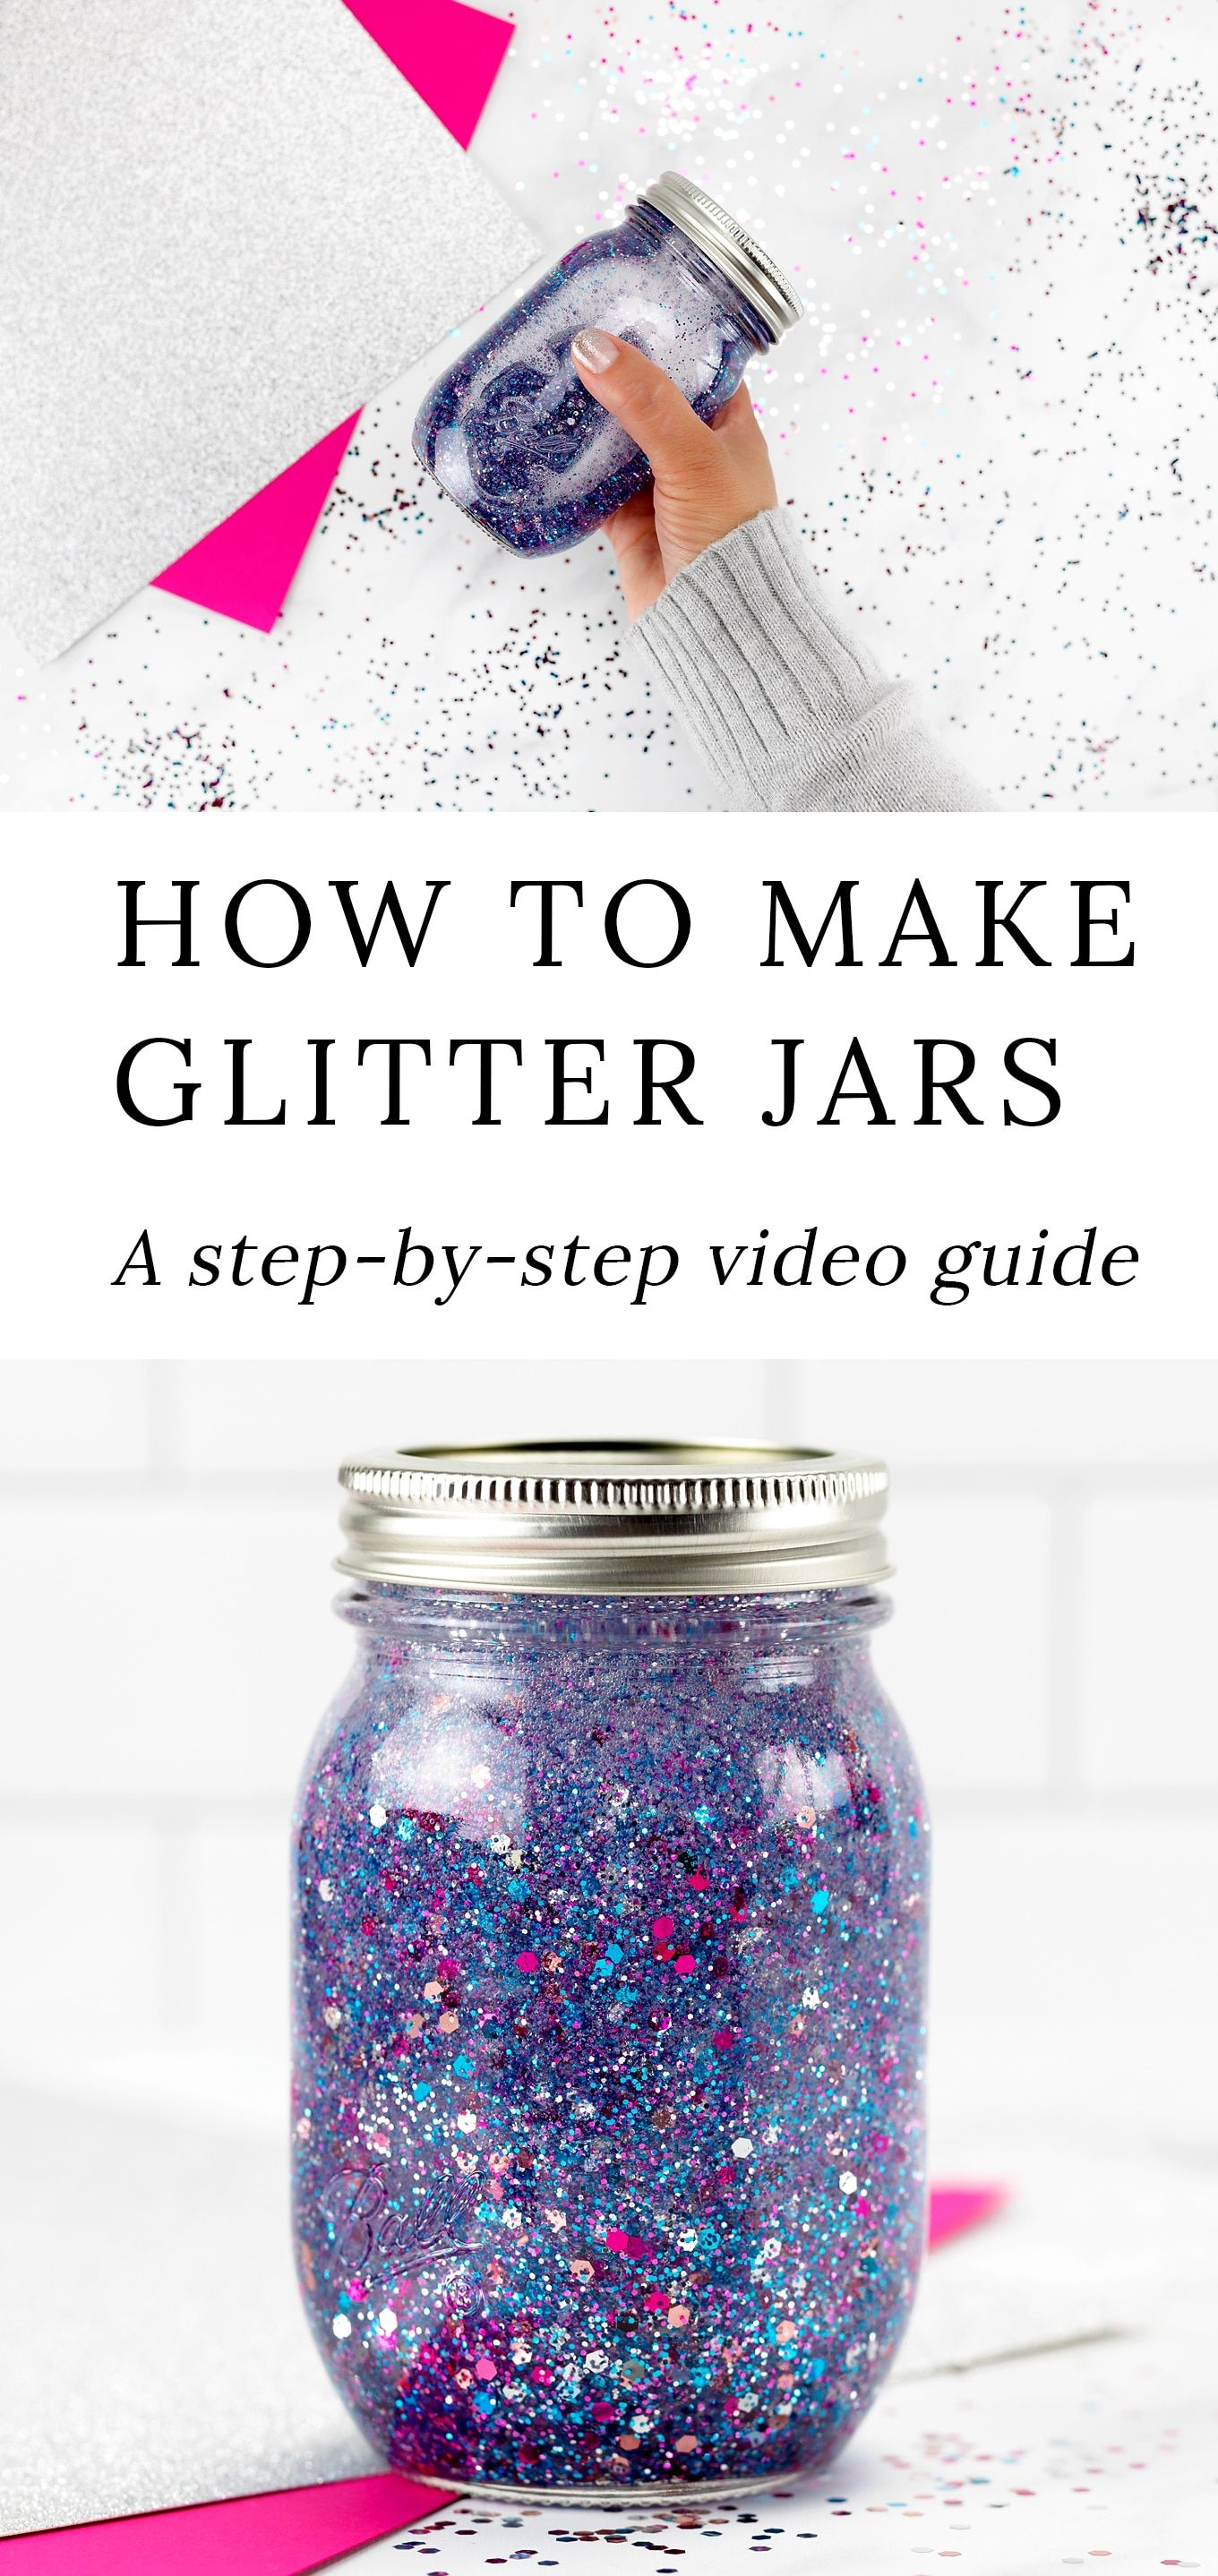 How to Make Glitter Jars is part of Glitter jars diy, Glitter jars, How to make glitter, Jar diy, Diy jar crafts, Homemade glitter - This post is the ultimate onestop resource on how to make a glitter jar; a beautiful, calming and easy DIY mindfulness activity for kids of all ages